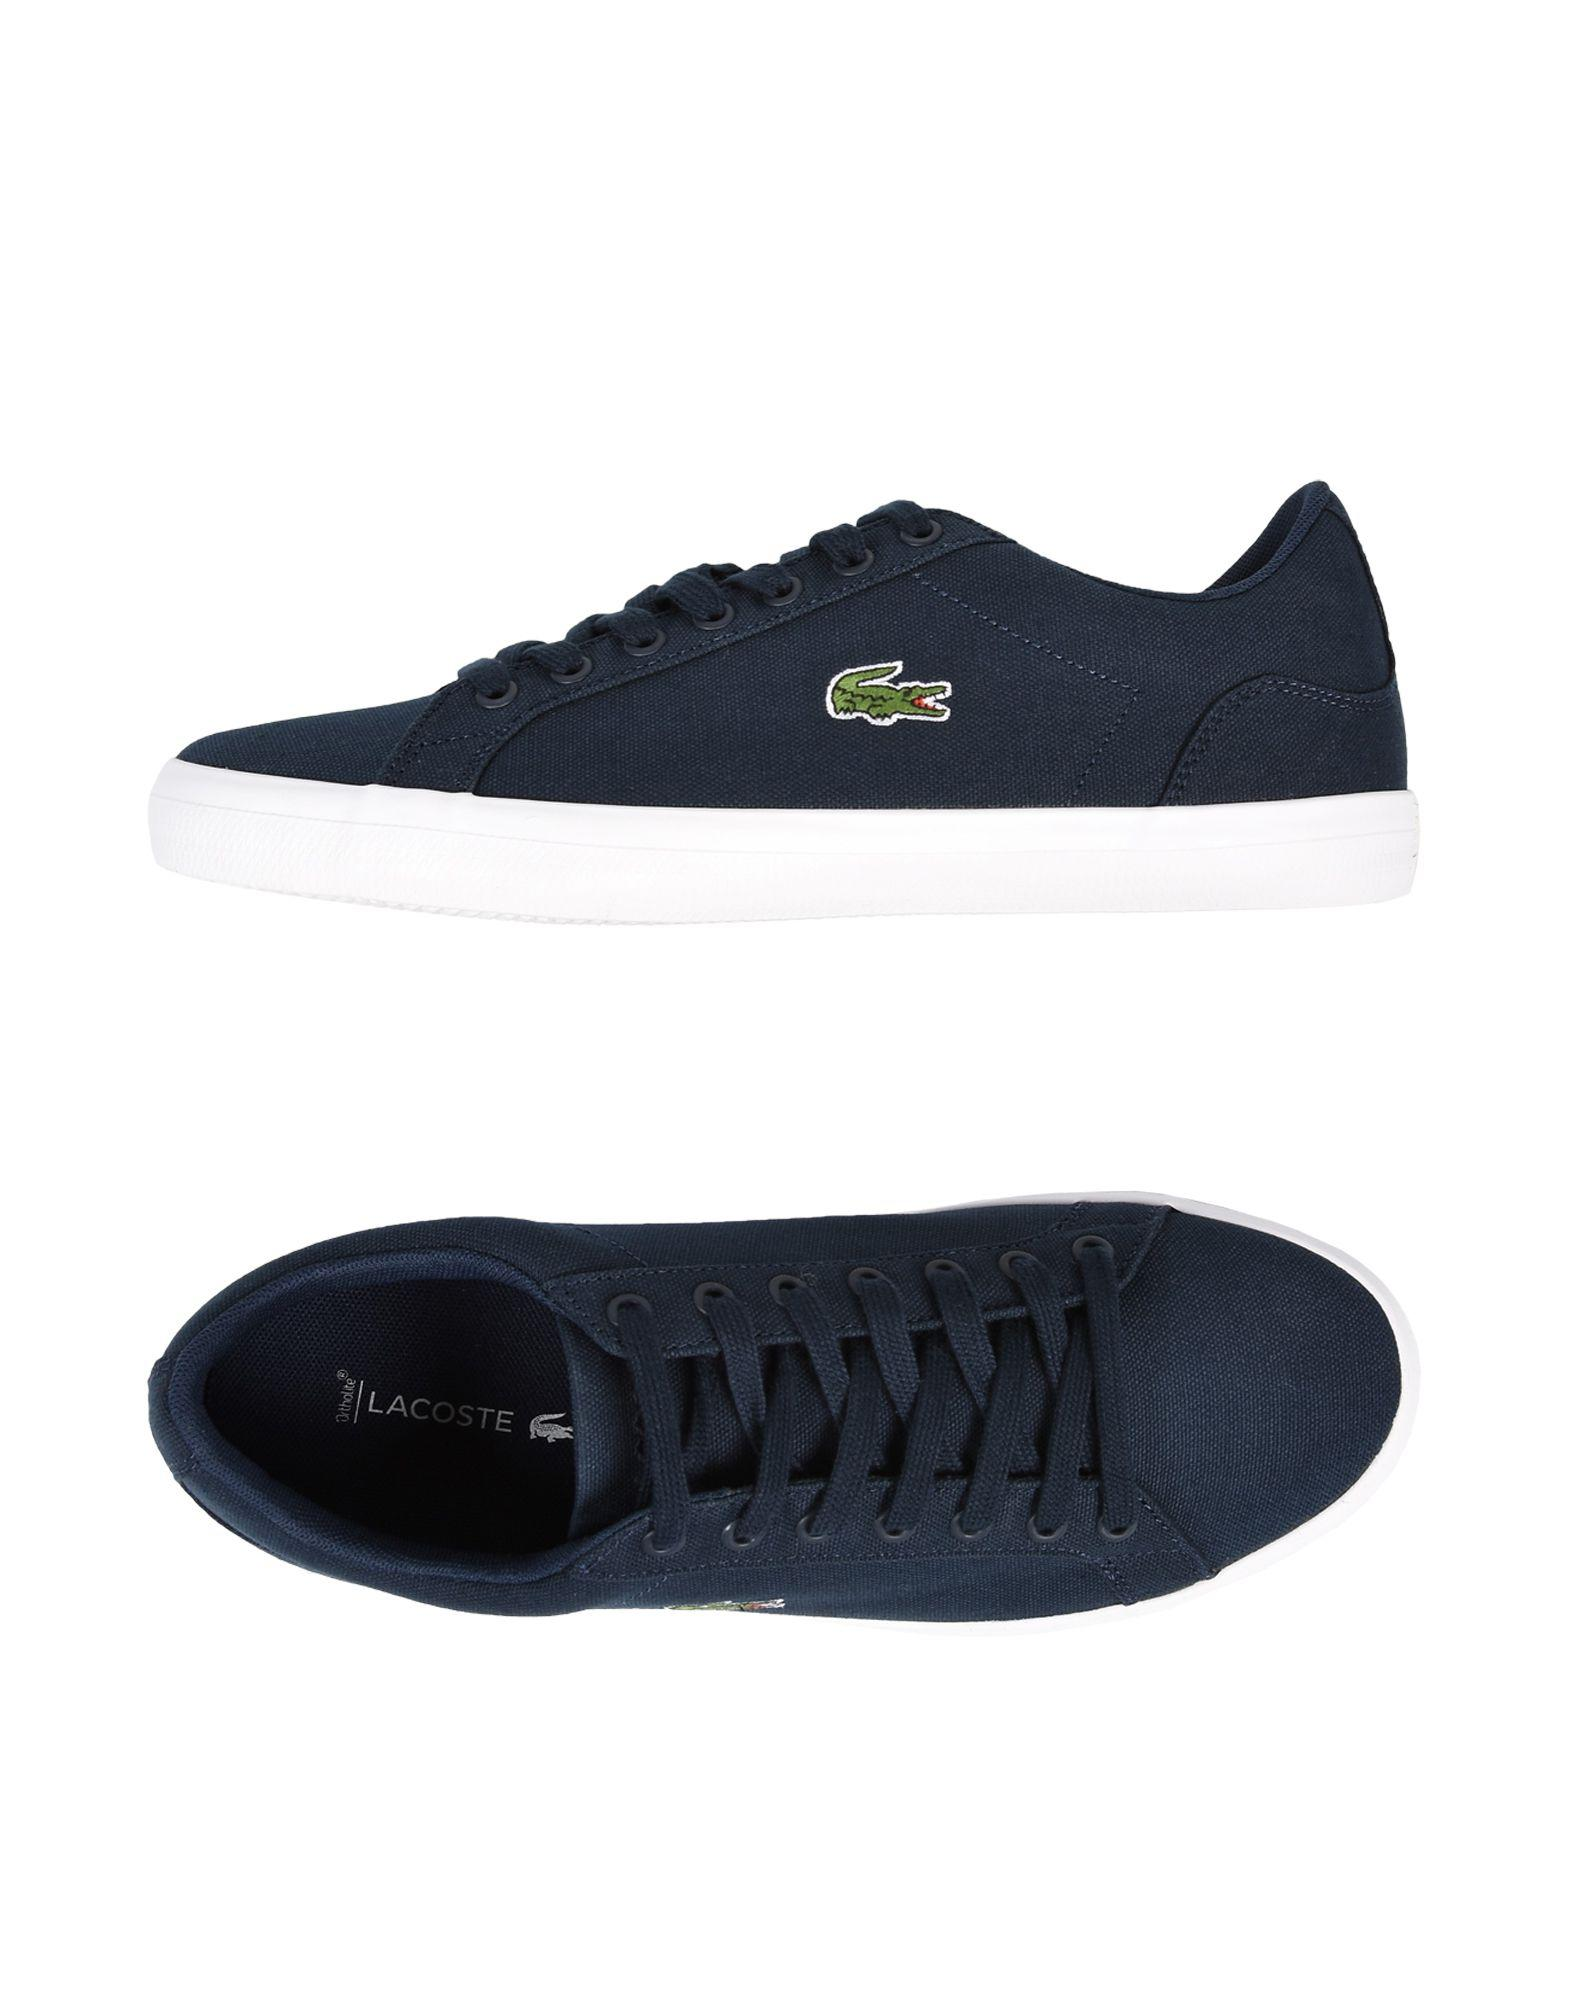 5ab8746aa Lacoste - Blue Low-tops   Sneakers for Men - Lyst. View fullscreen